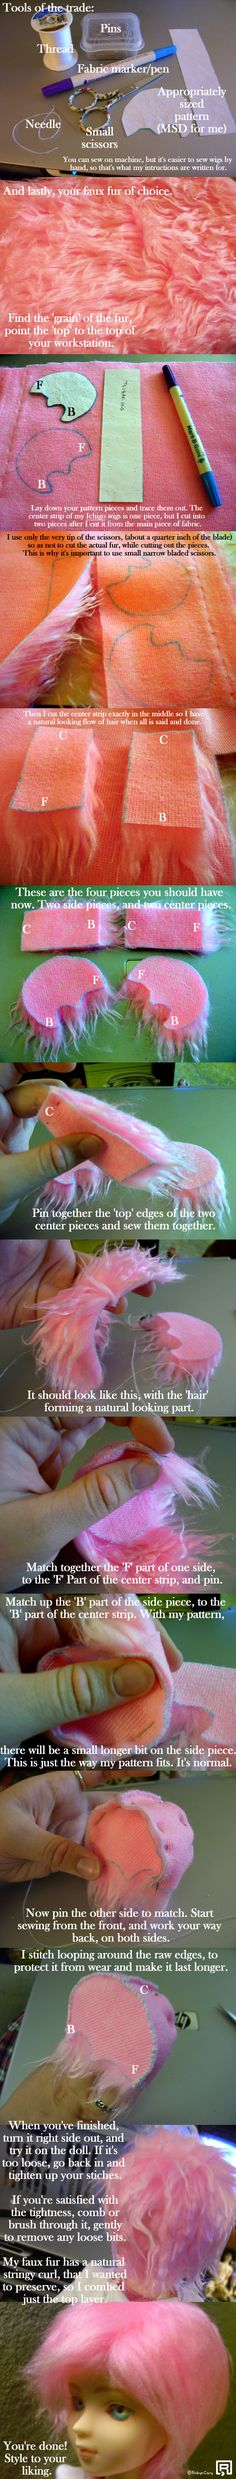 COULD BE USEFUL IN COVERING 1/6 SCALE DOLLS THAT HAVE LOST THEIR HAIR....Faux fur wig